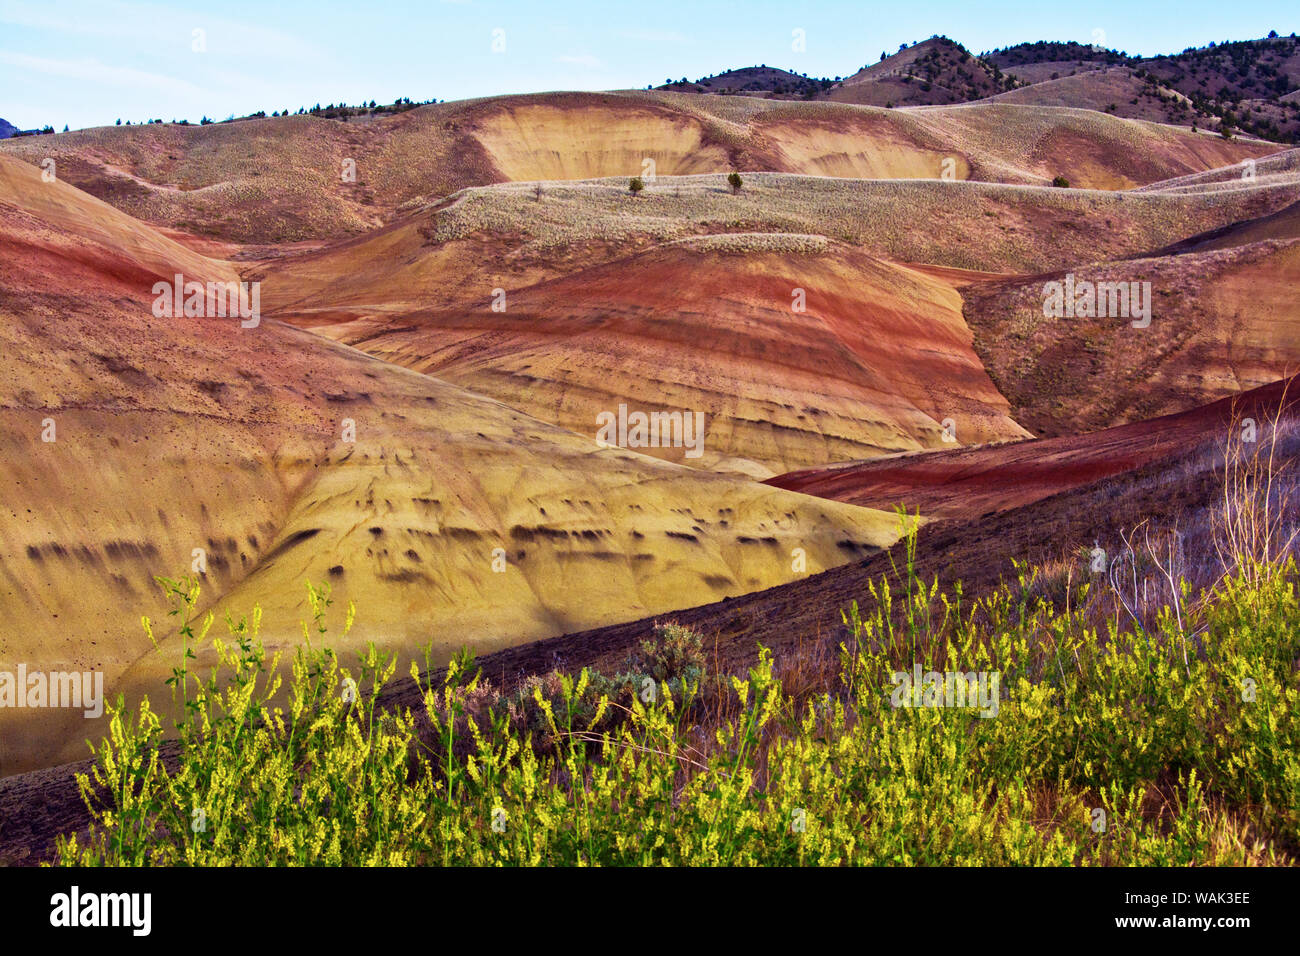 Gelbe blumen in Painted Hills, John Day Fossil Beds National Monument, Mitchell, Oregon, USA. Stockfoto